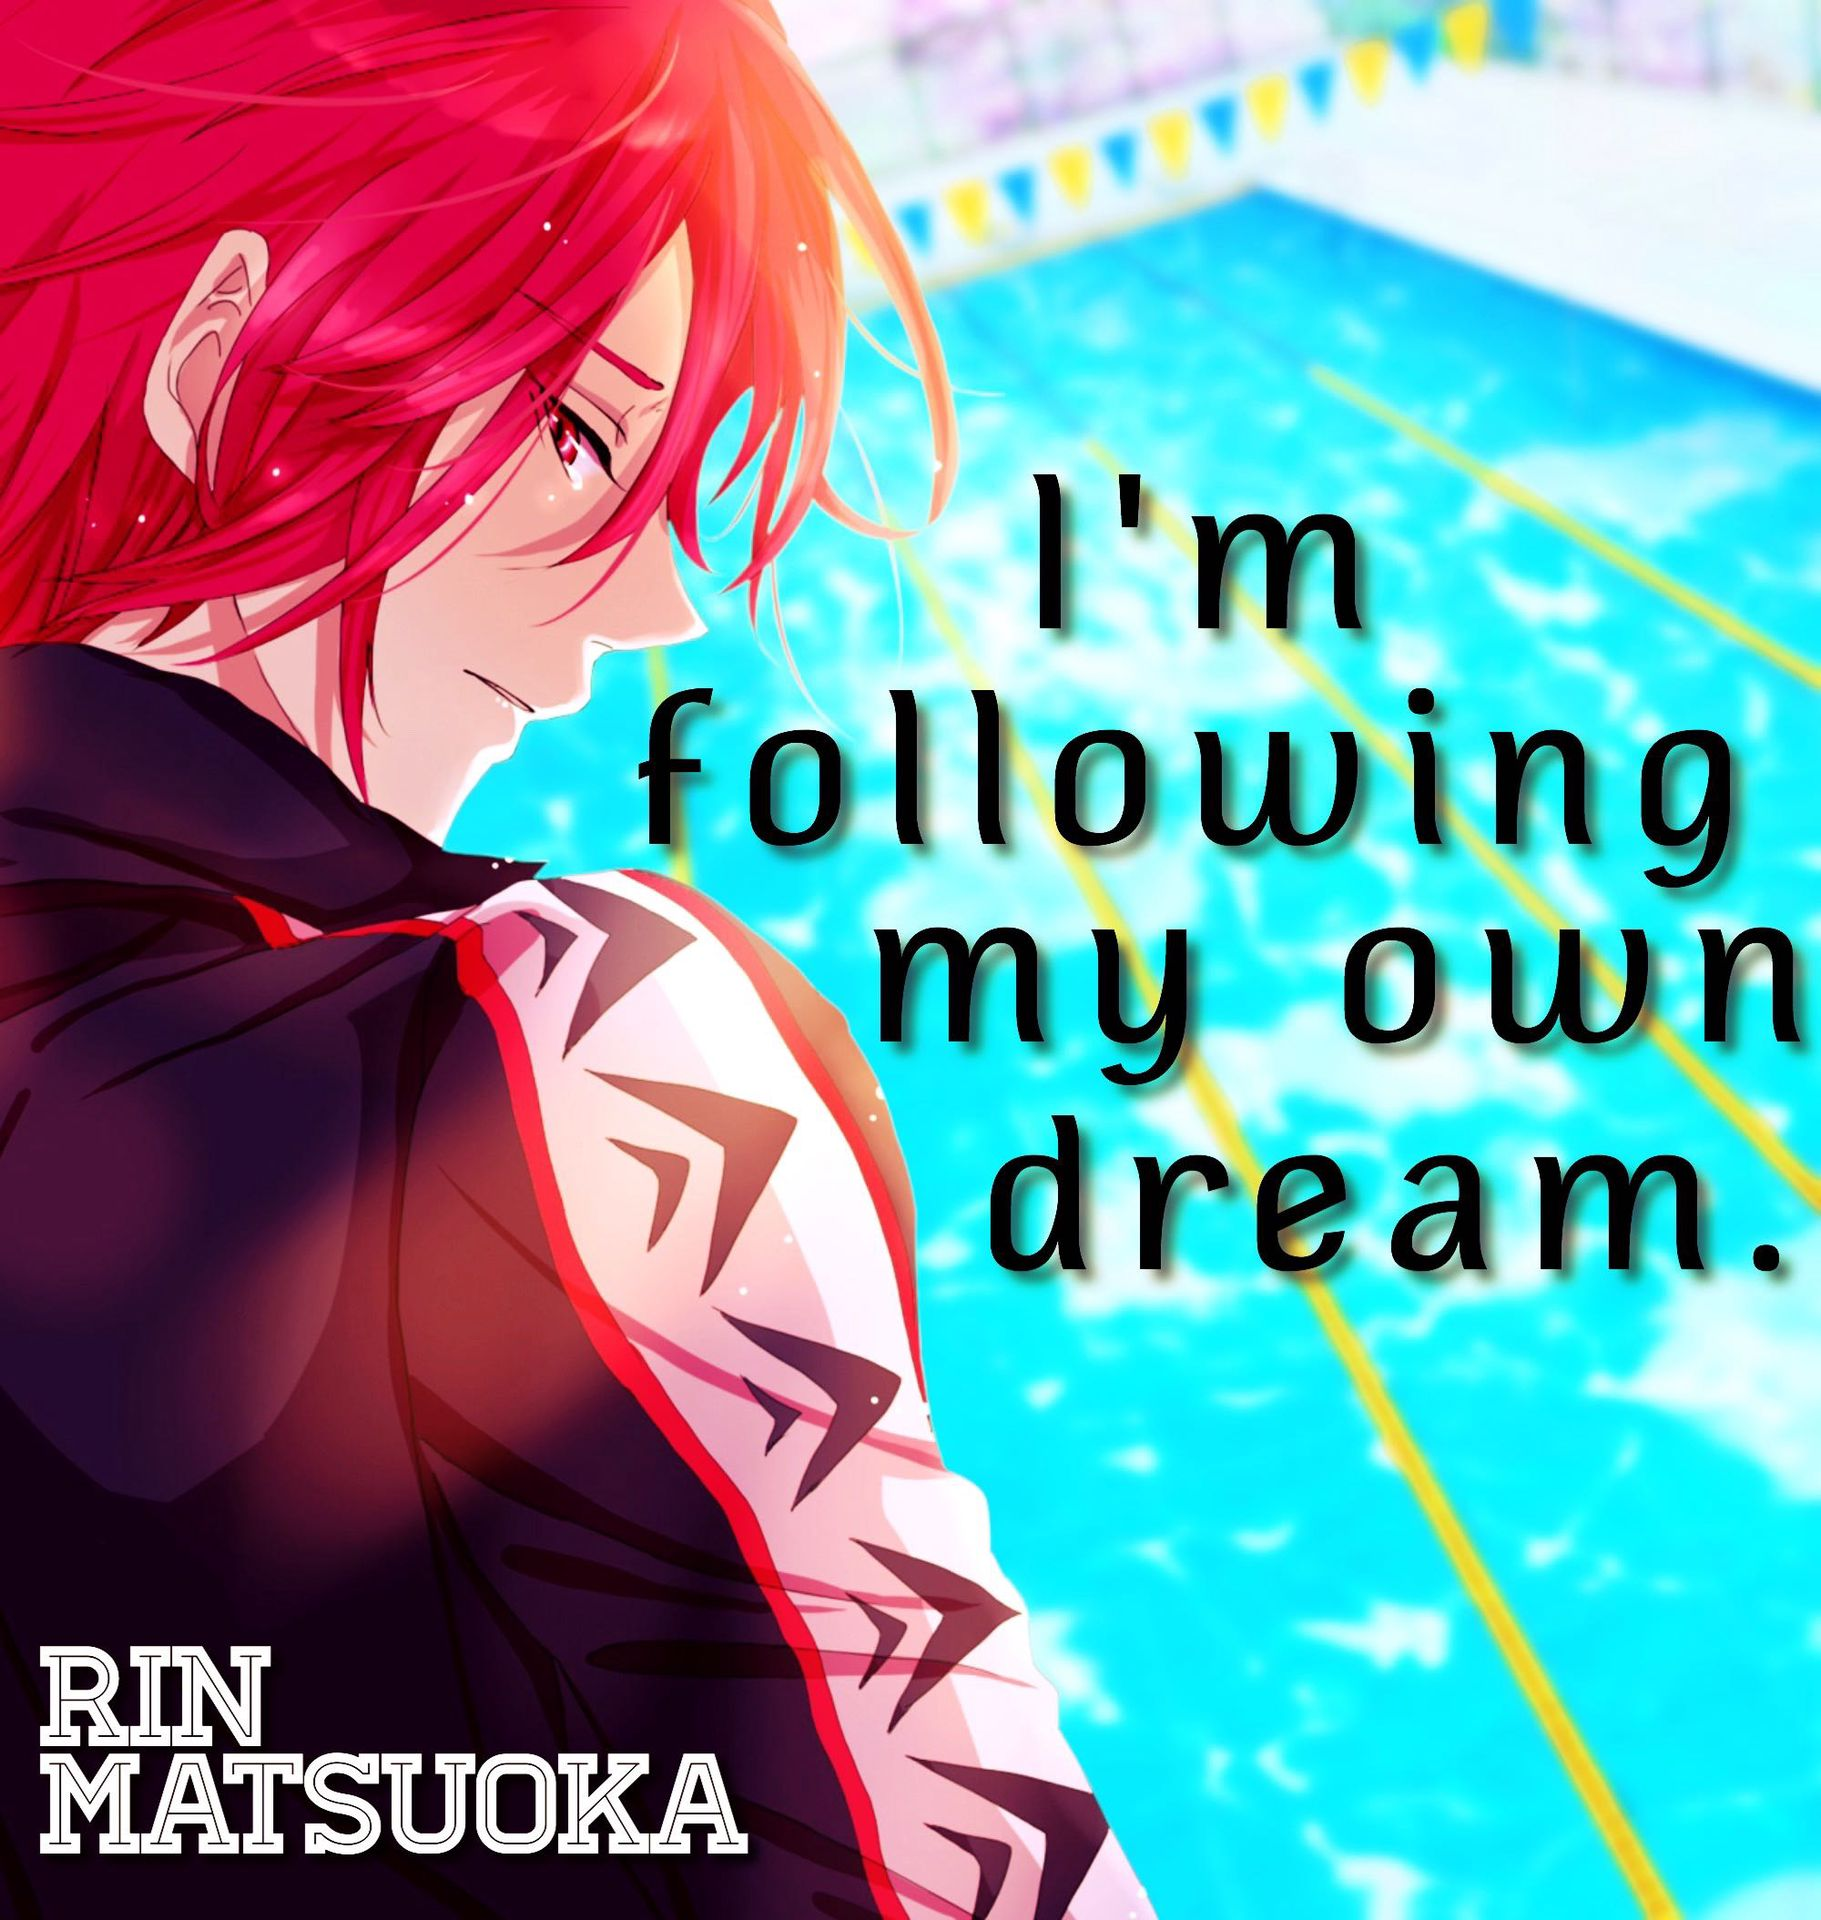 Book Of Anime Quotes Free 1 Wattpad They have been indexed as male. wattpad